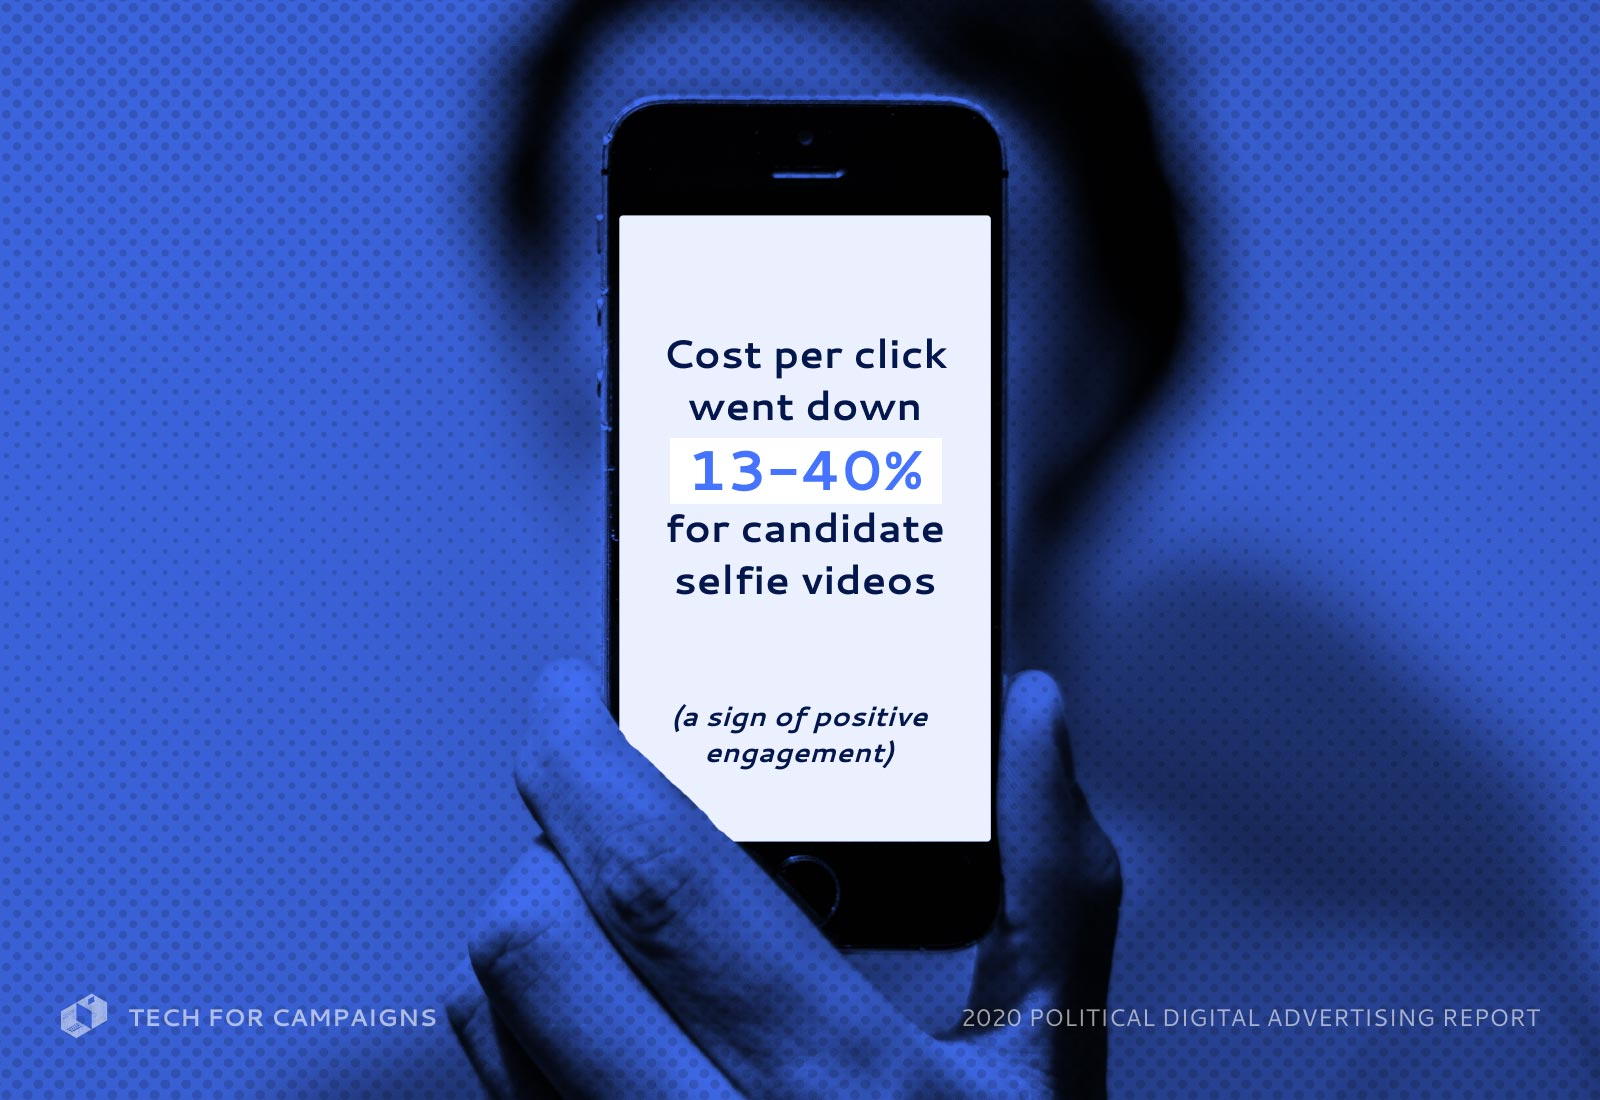 Cost per click went down 13-40% for candidate selfie videos